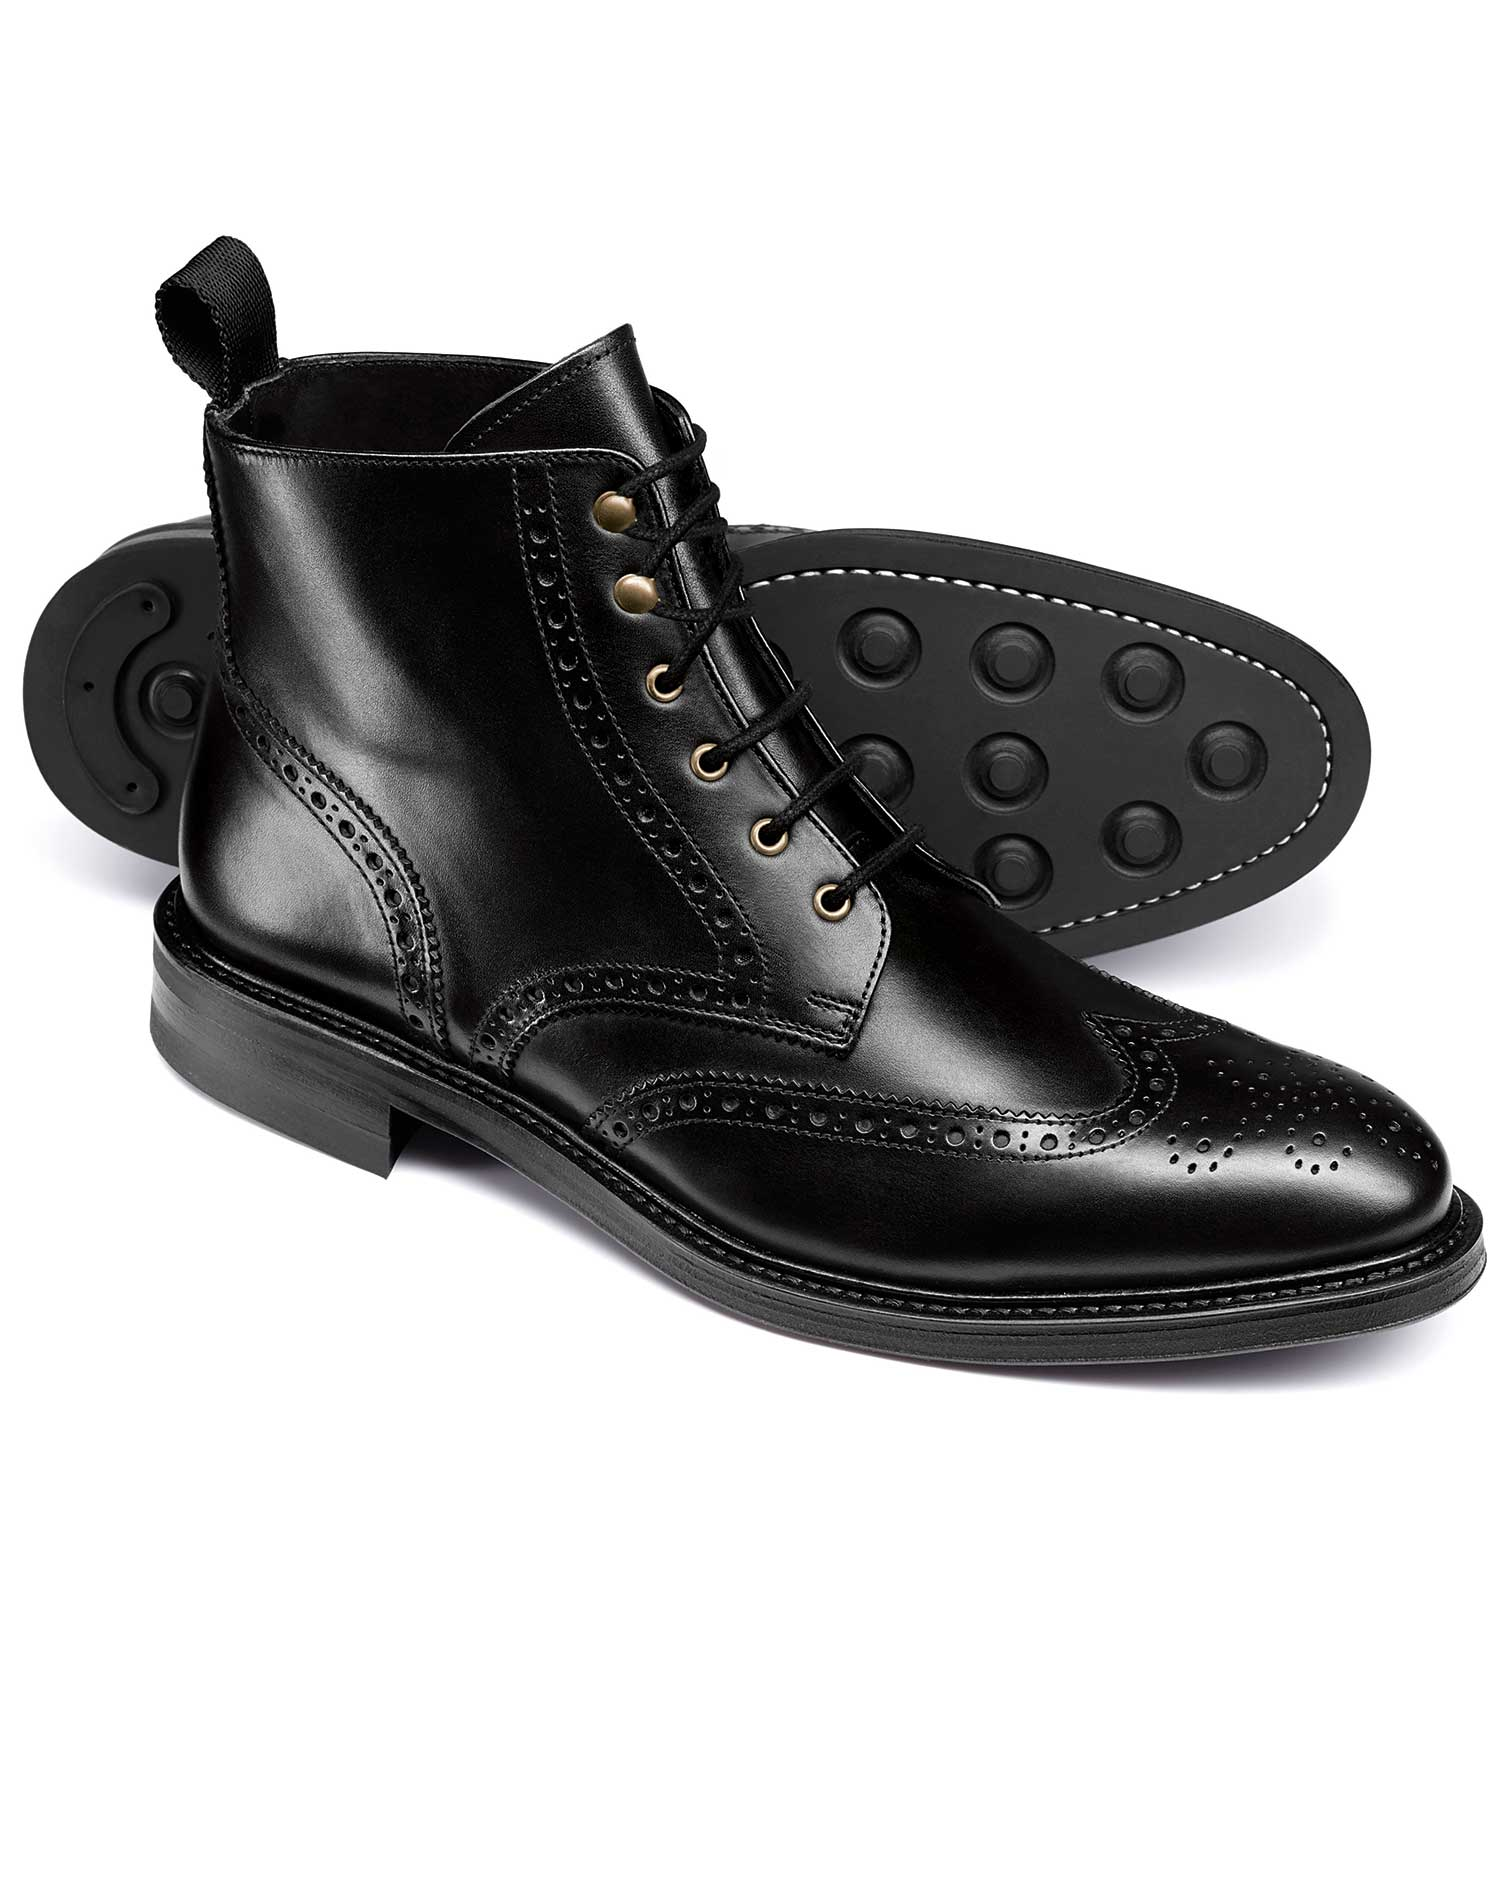 1920s Style Mens Shoes | Peaky Blinders Boots Black Brogue Wing Tip Boots Size 9 R by Charles Tyrwhitt £129.00 AT vintagedancer.com